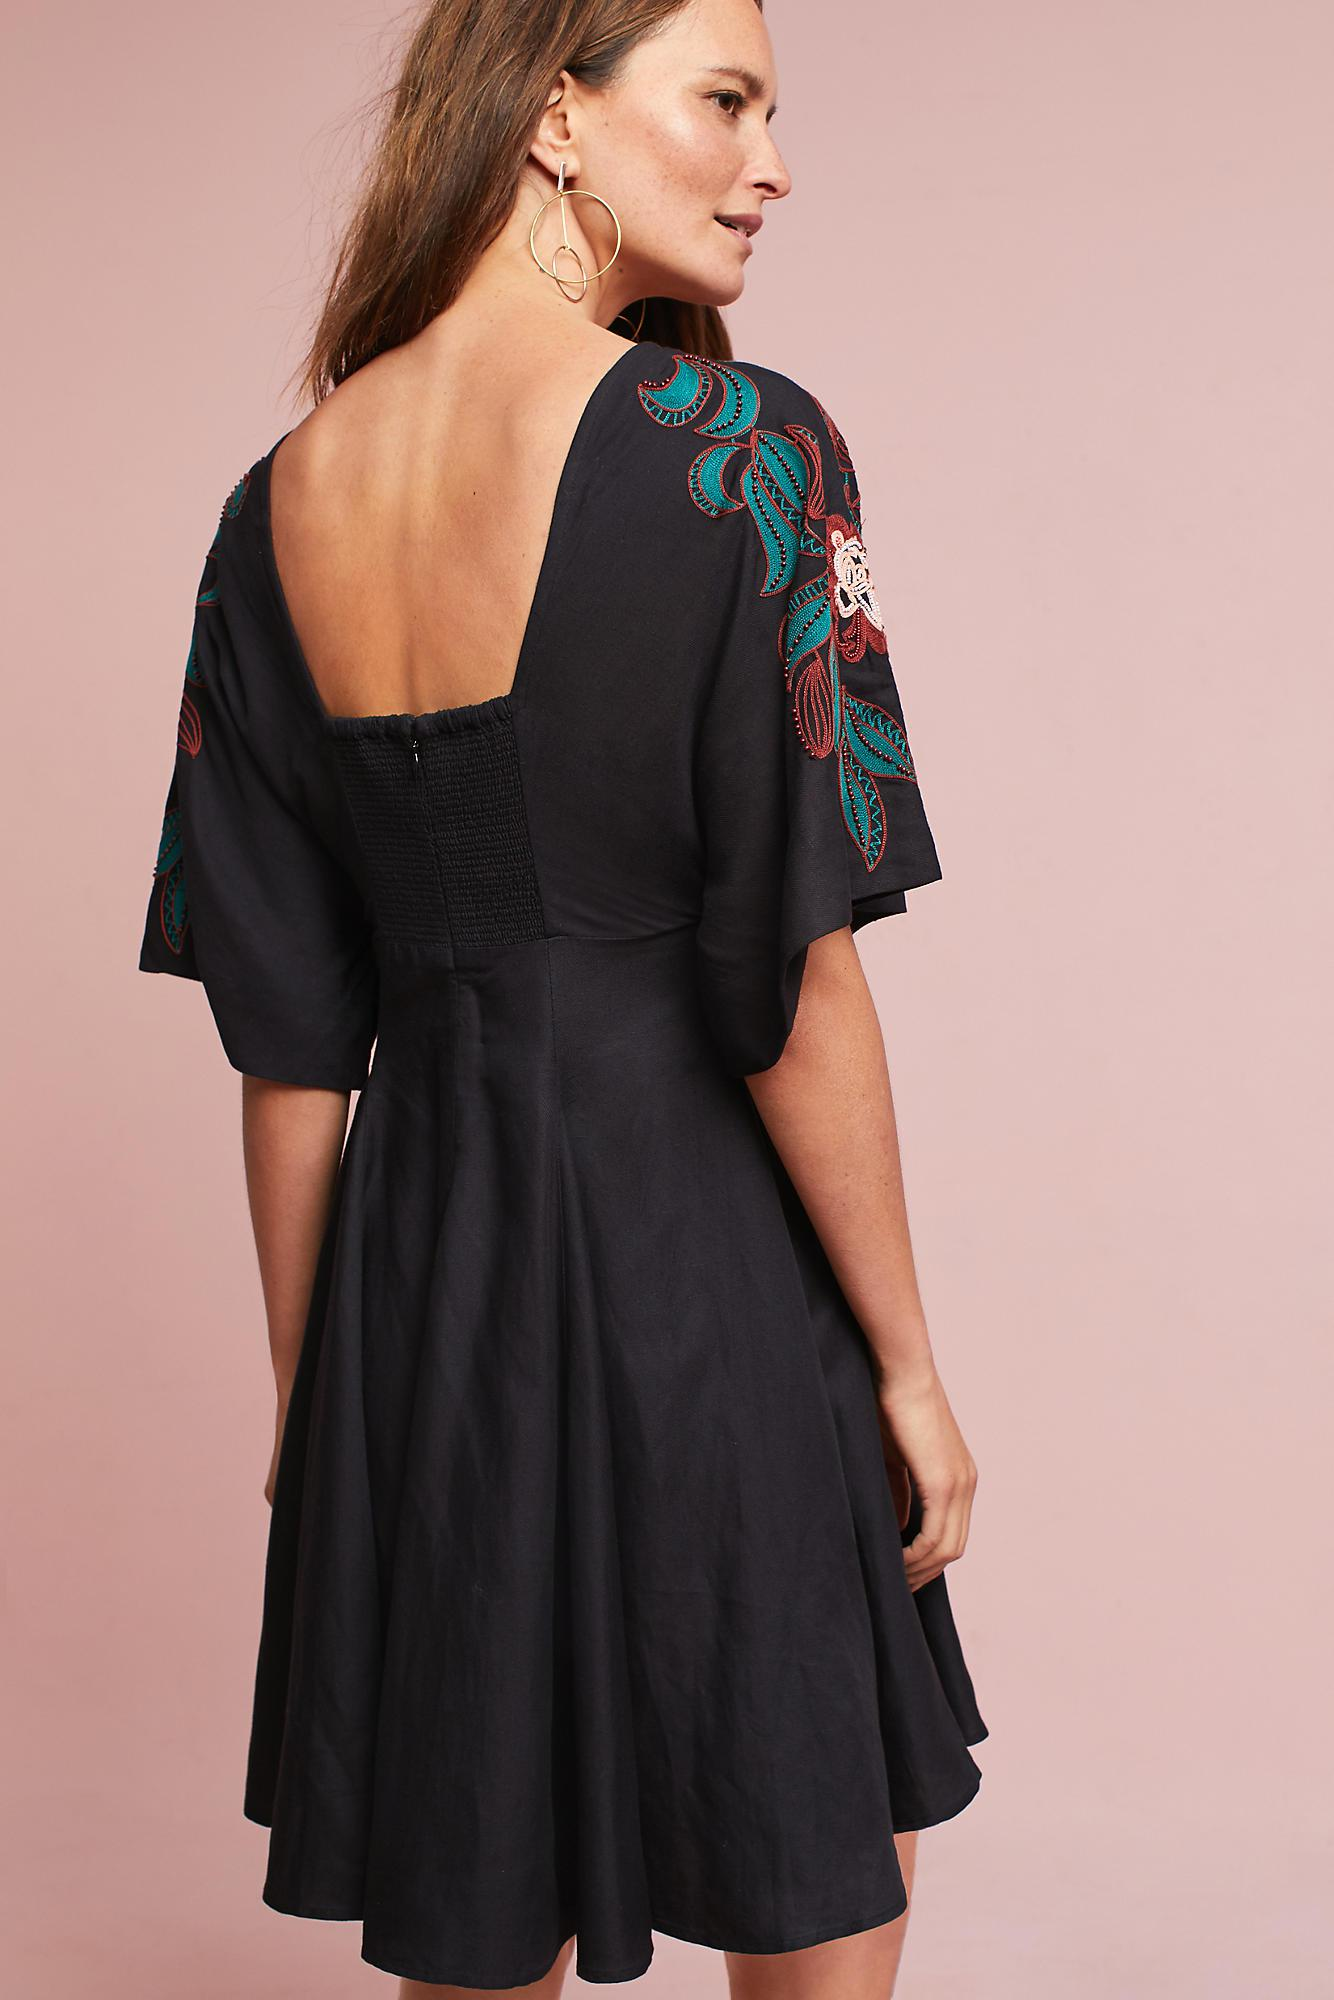 e81d39e95ee Anthropologie Priscilla Embroidered Dress